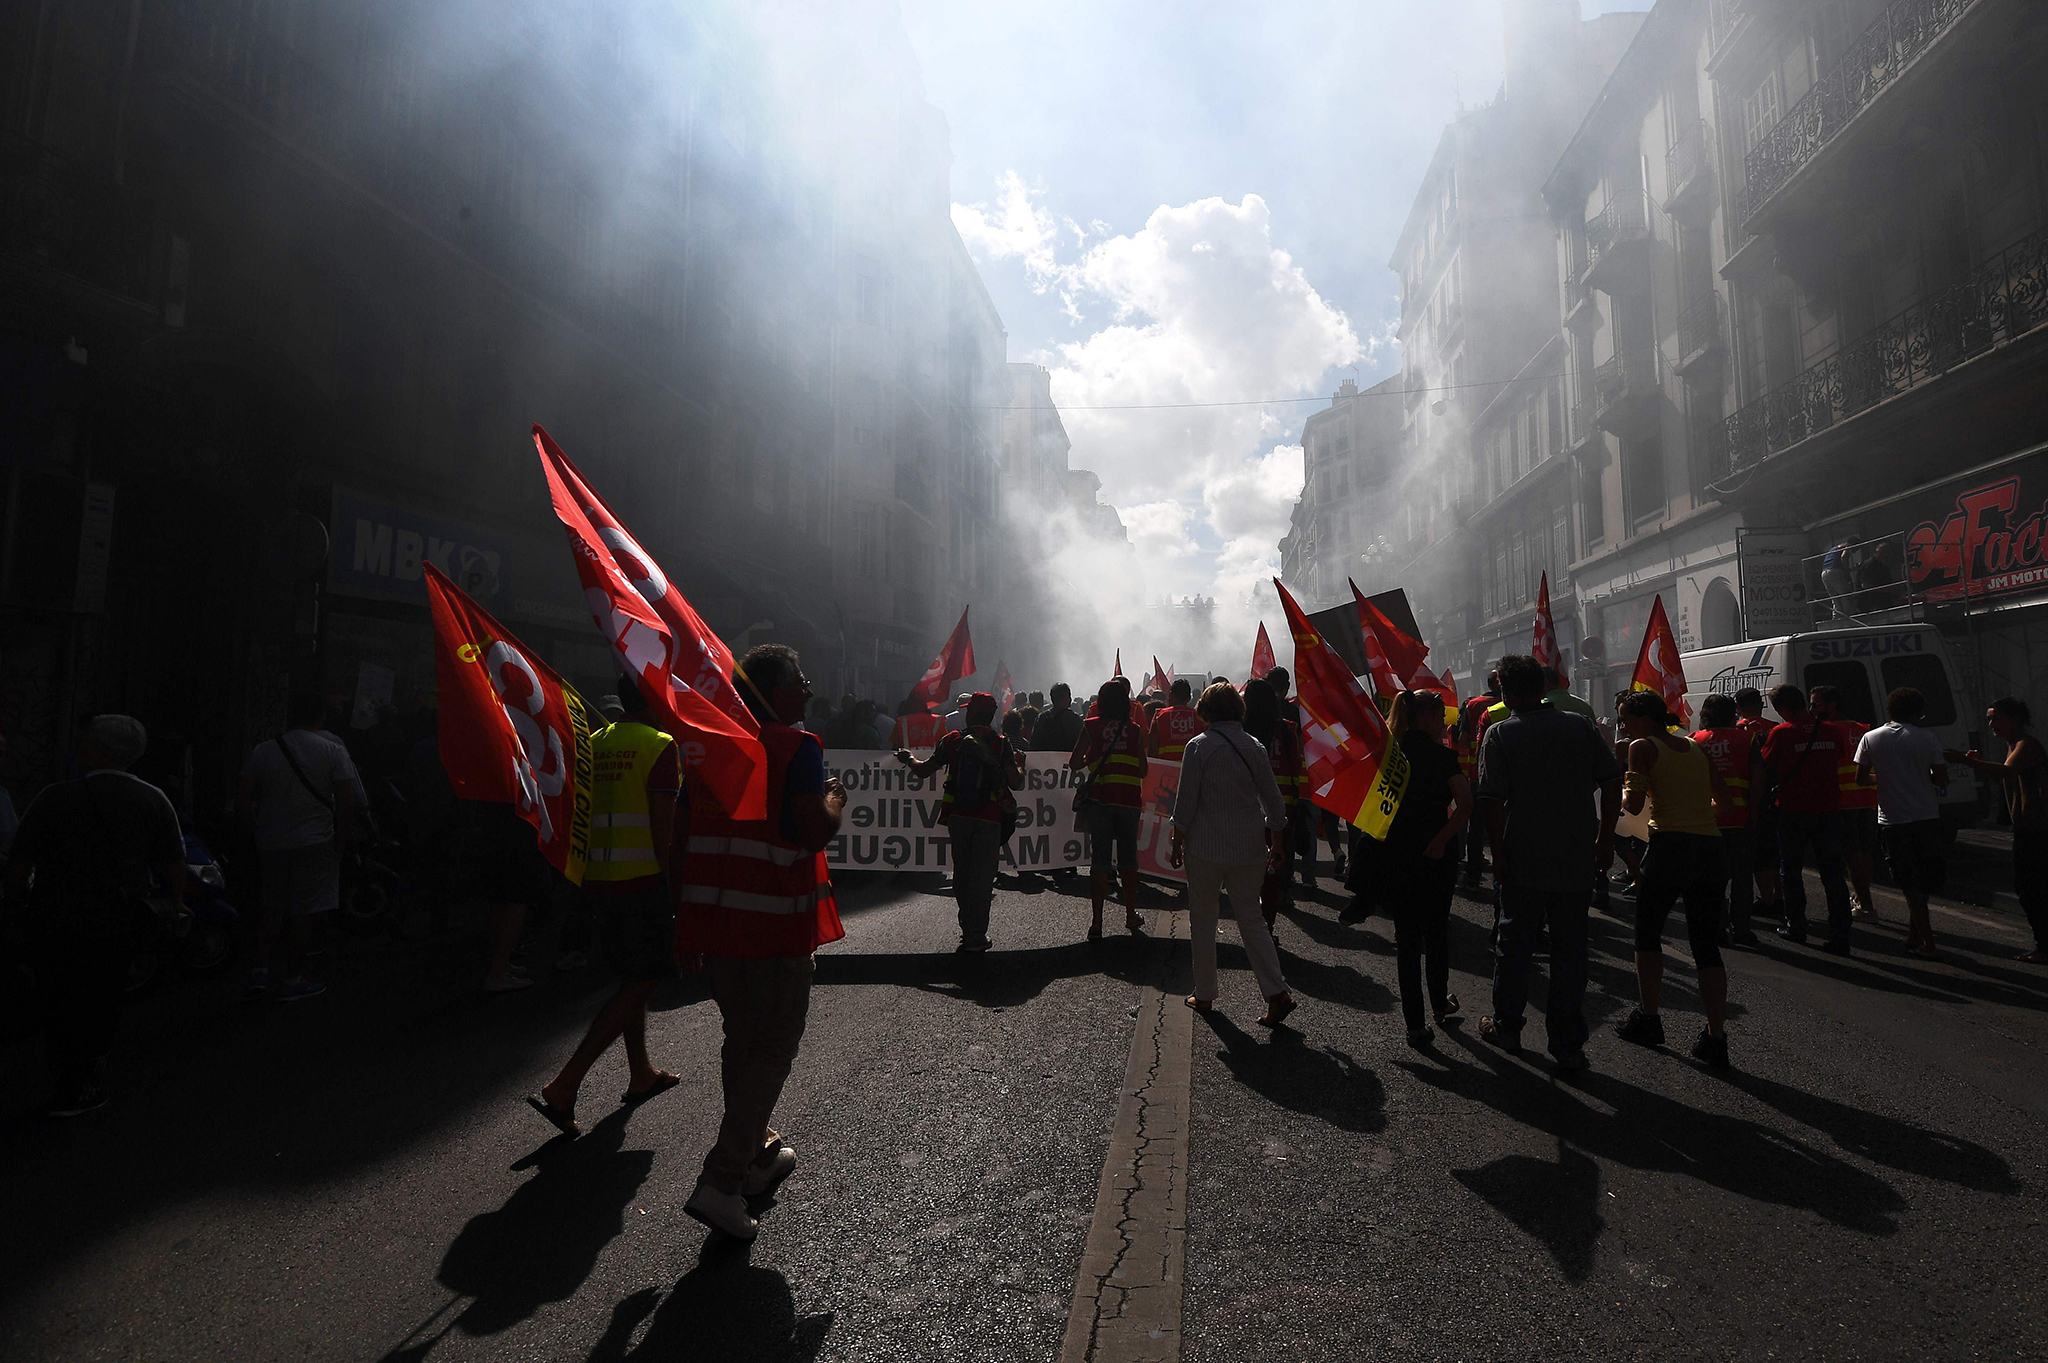 People take part in a demonstration against the French government's labour law reforms, on September 15, 2016 in Marseille, southern France.  / AFP PHOTO / ANNE-CHRISTINE POUJOULATANNE-CHRISTINE POUJOULAT/AFP/Getty Images